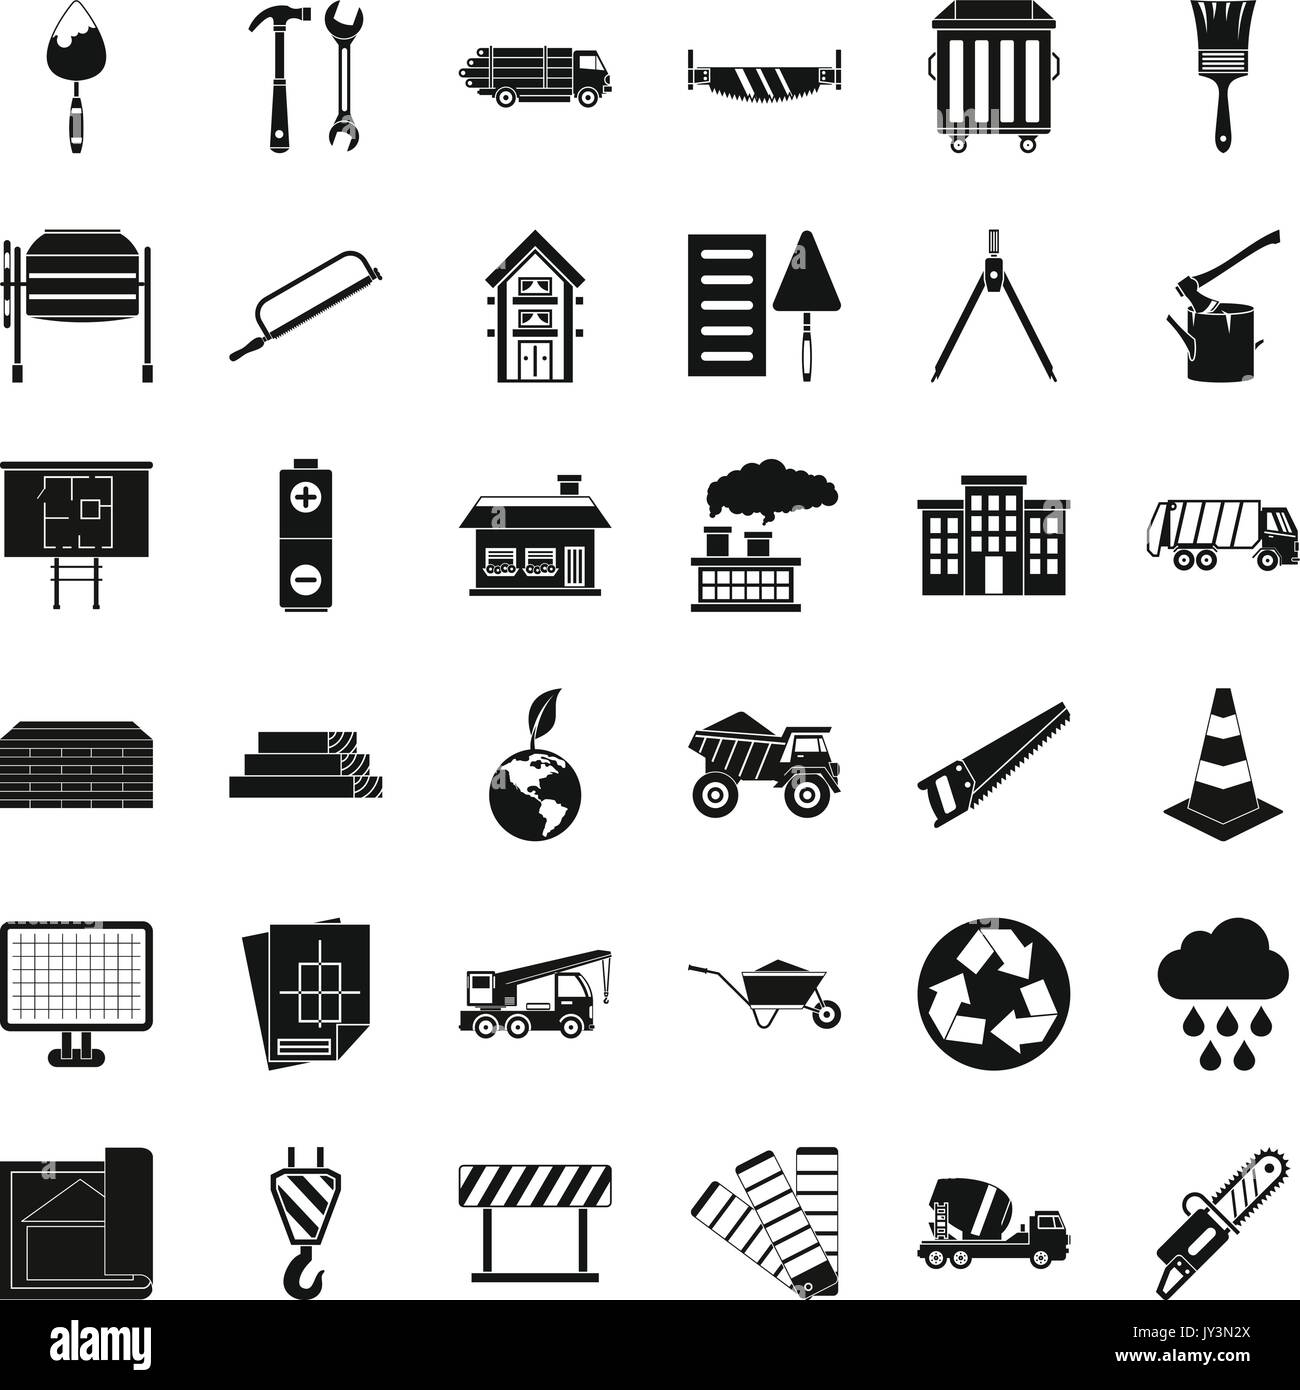 Construction Material Icons Set Simple Style Stock Vector Image Art Alamy